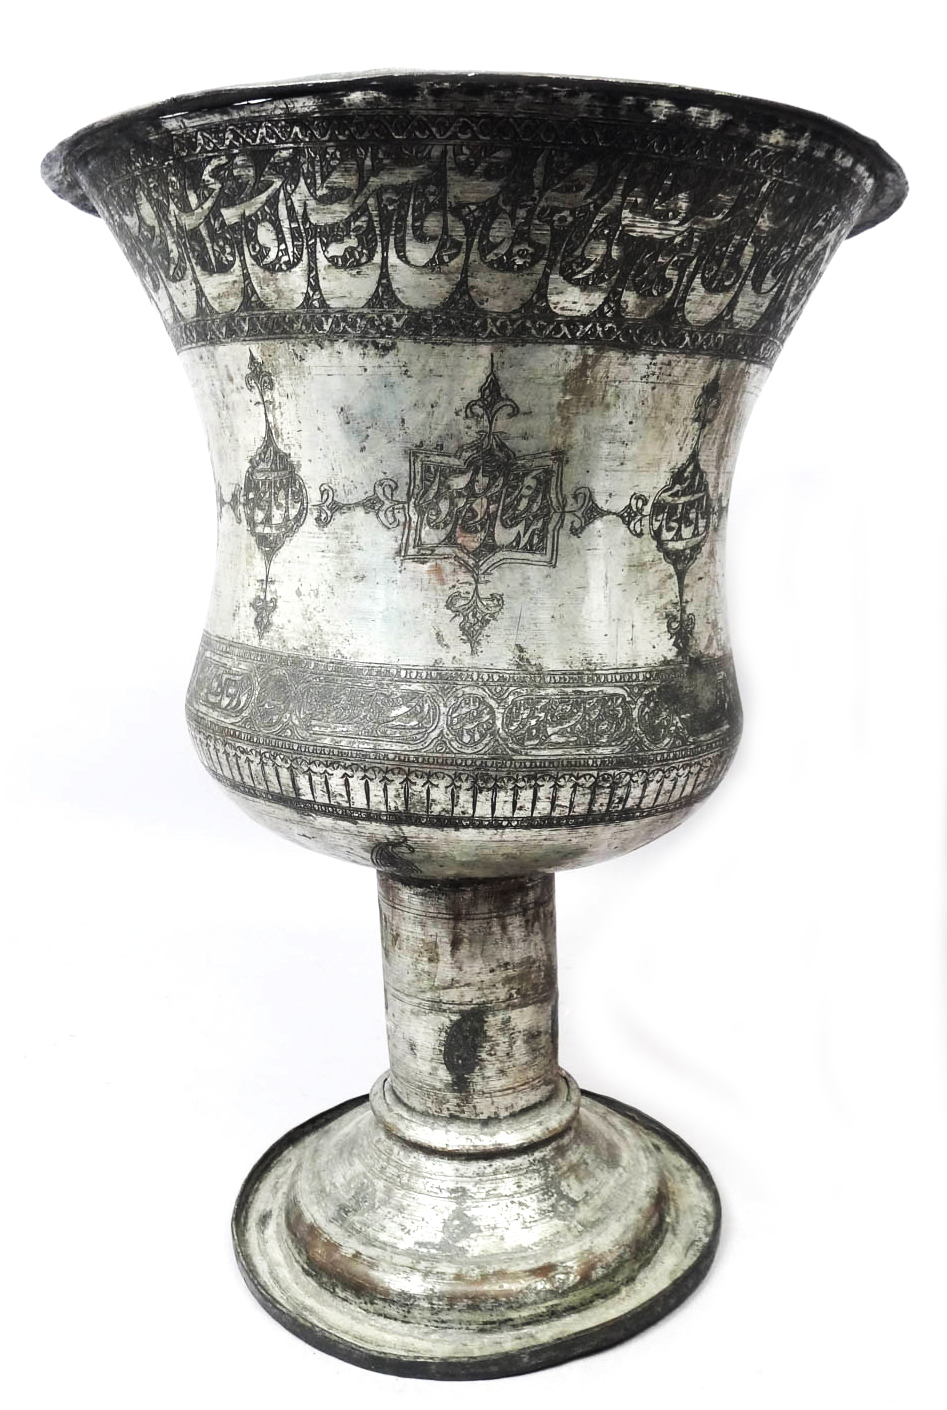 Antique Silver Etched Arabic Calligraphy Goblet